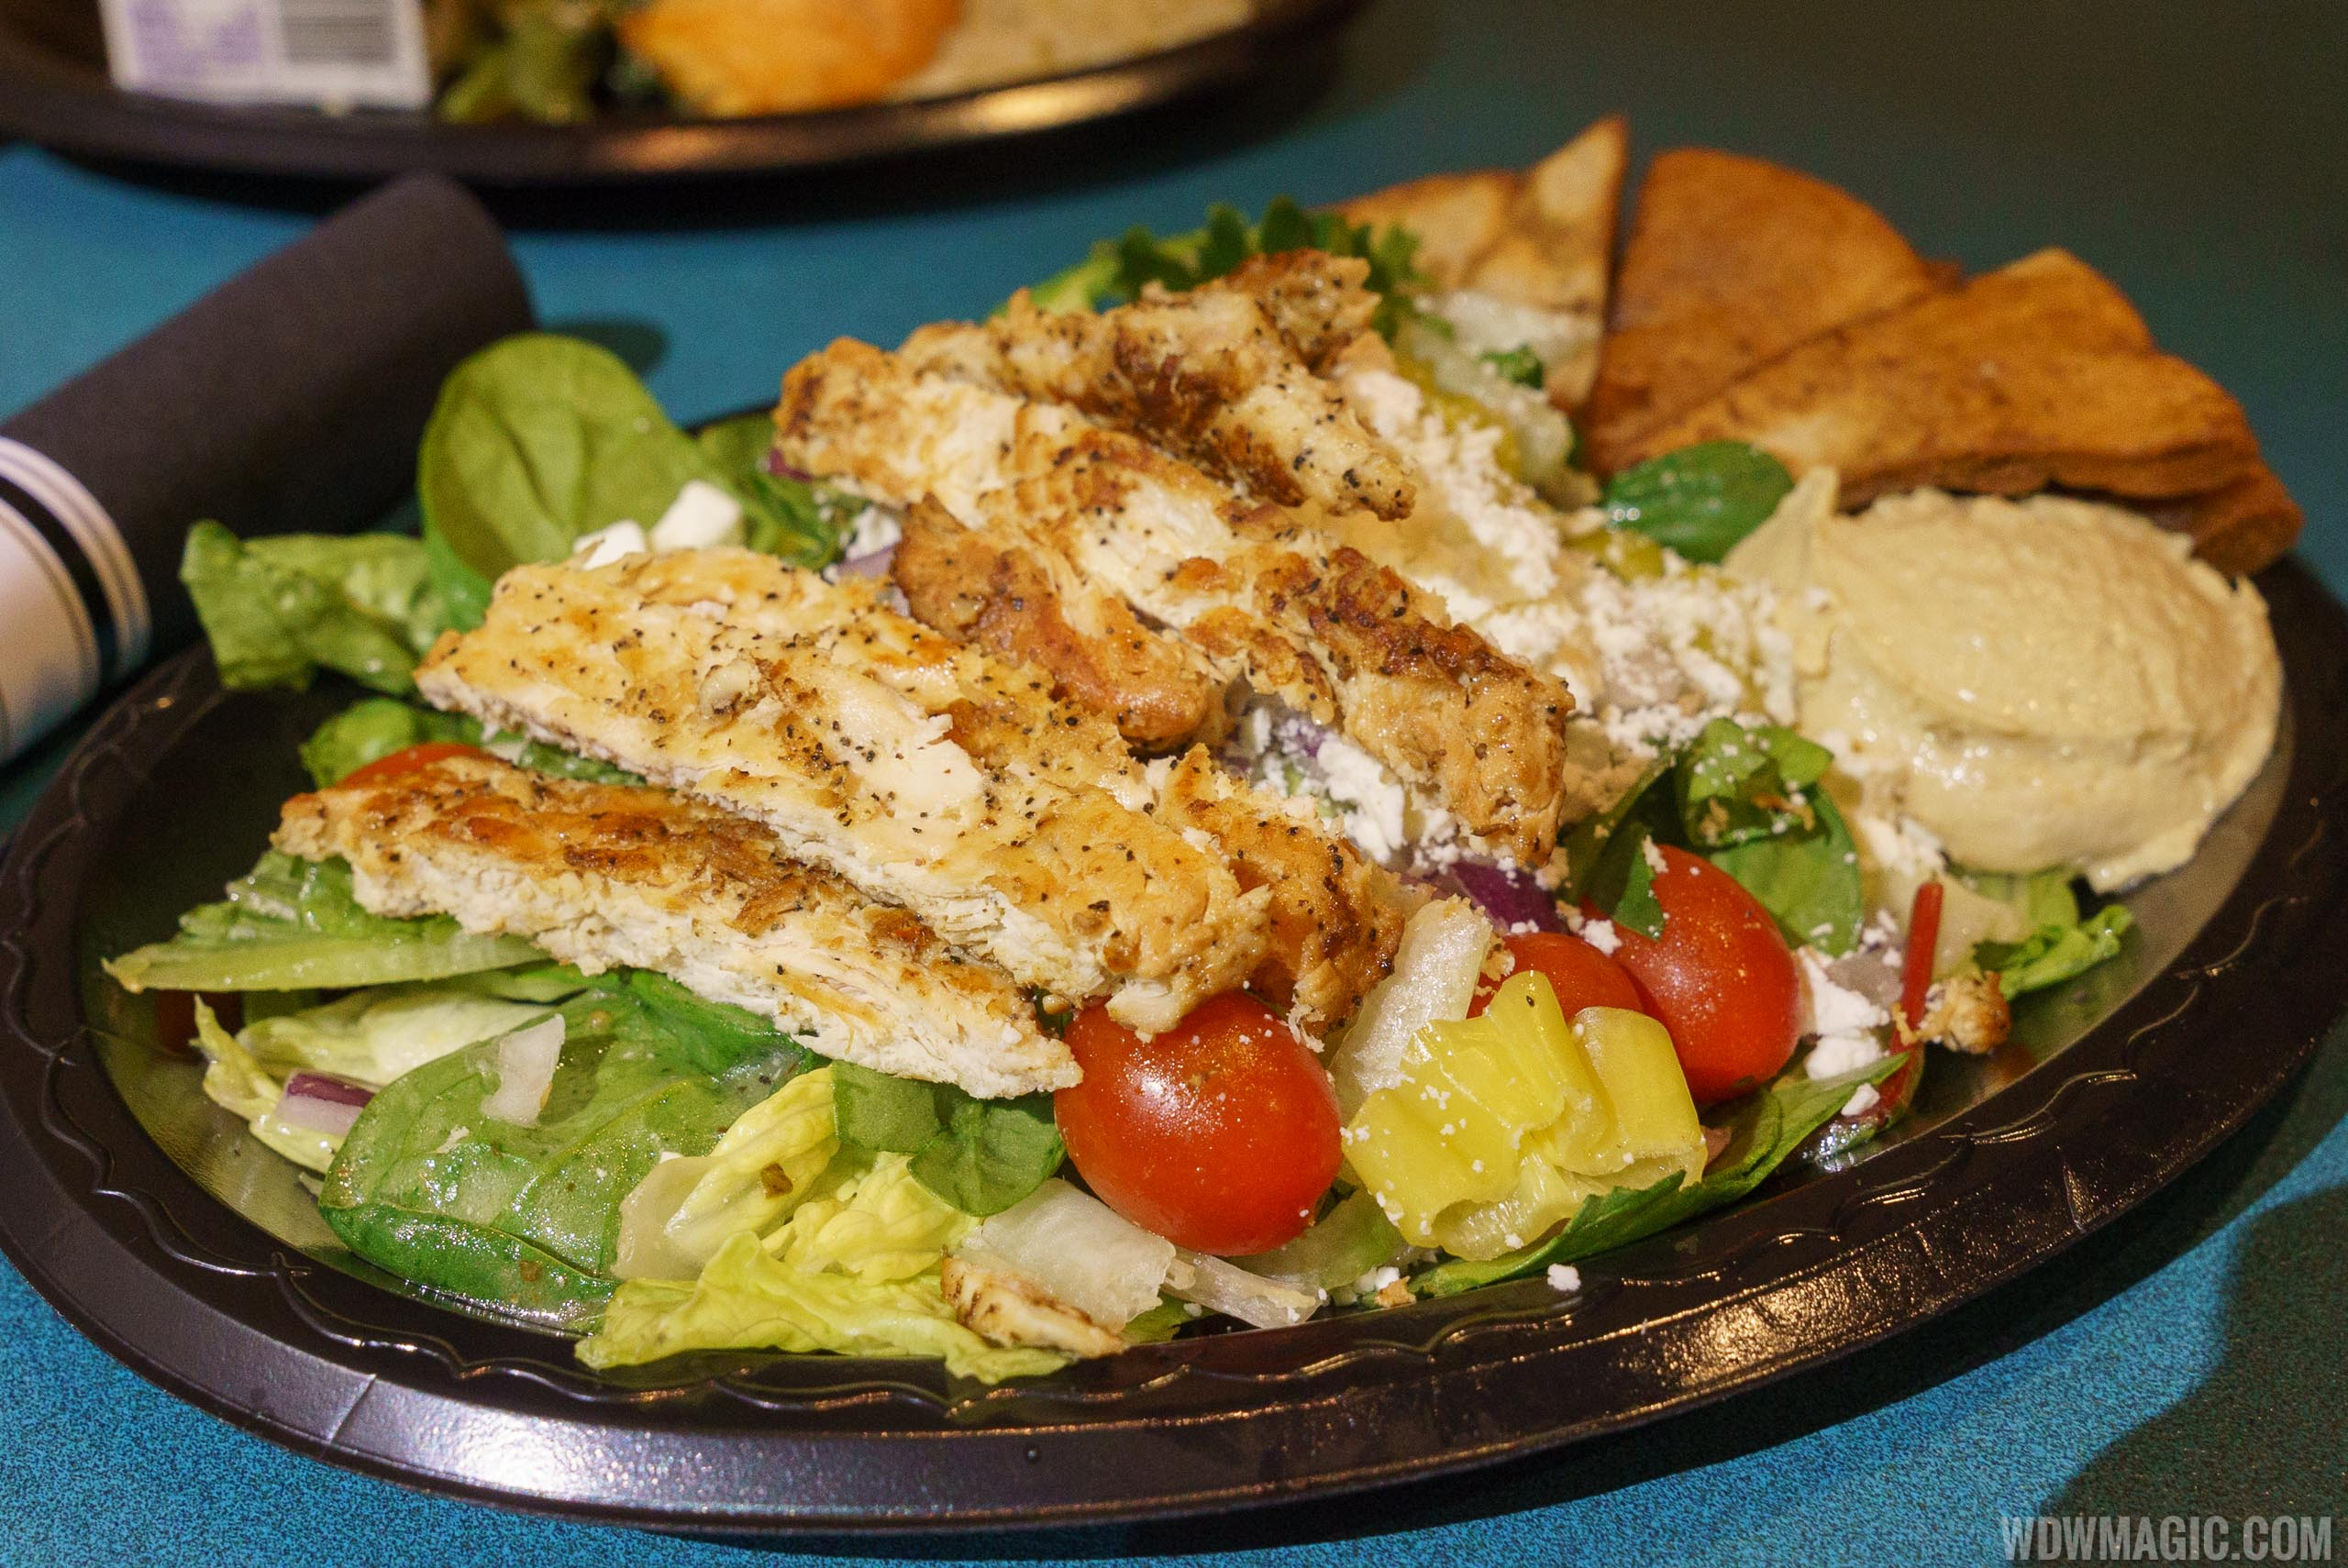 ABC Commissary Dinner - Mediterranean Salad with Chicken